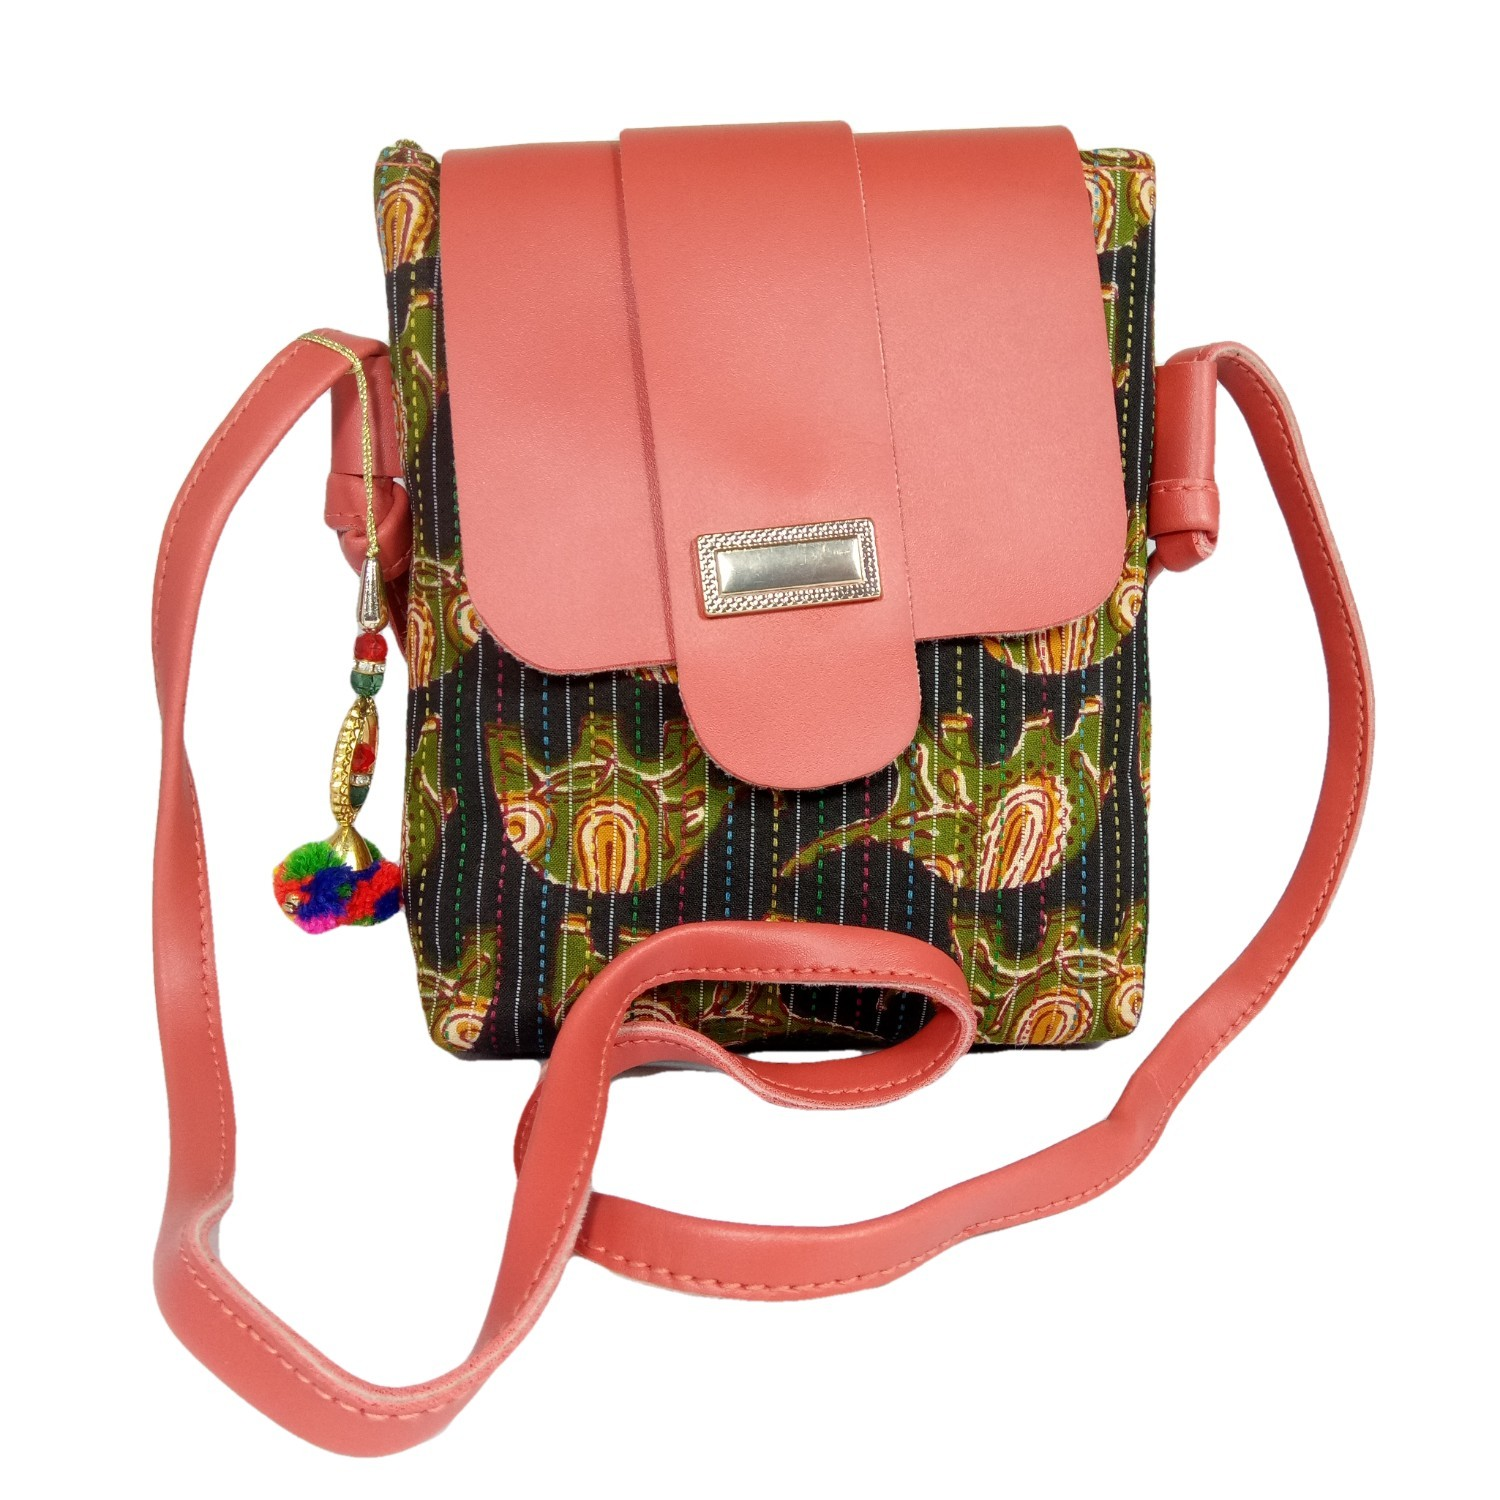 Handmade Excellent Black & Pink Genuine Shoulder Bag by Women Self Help Groups of Rajasthan